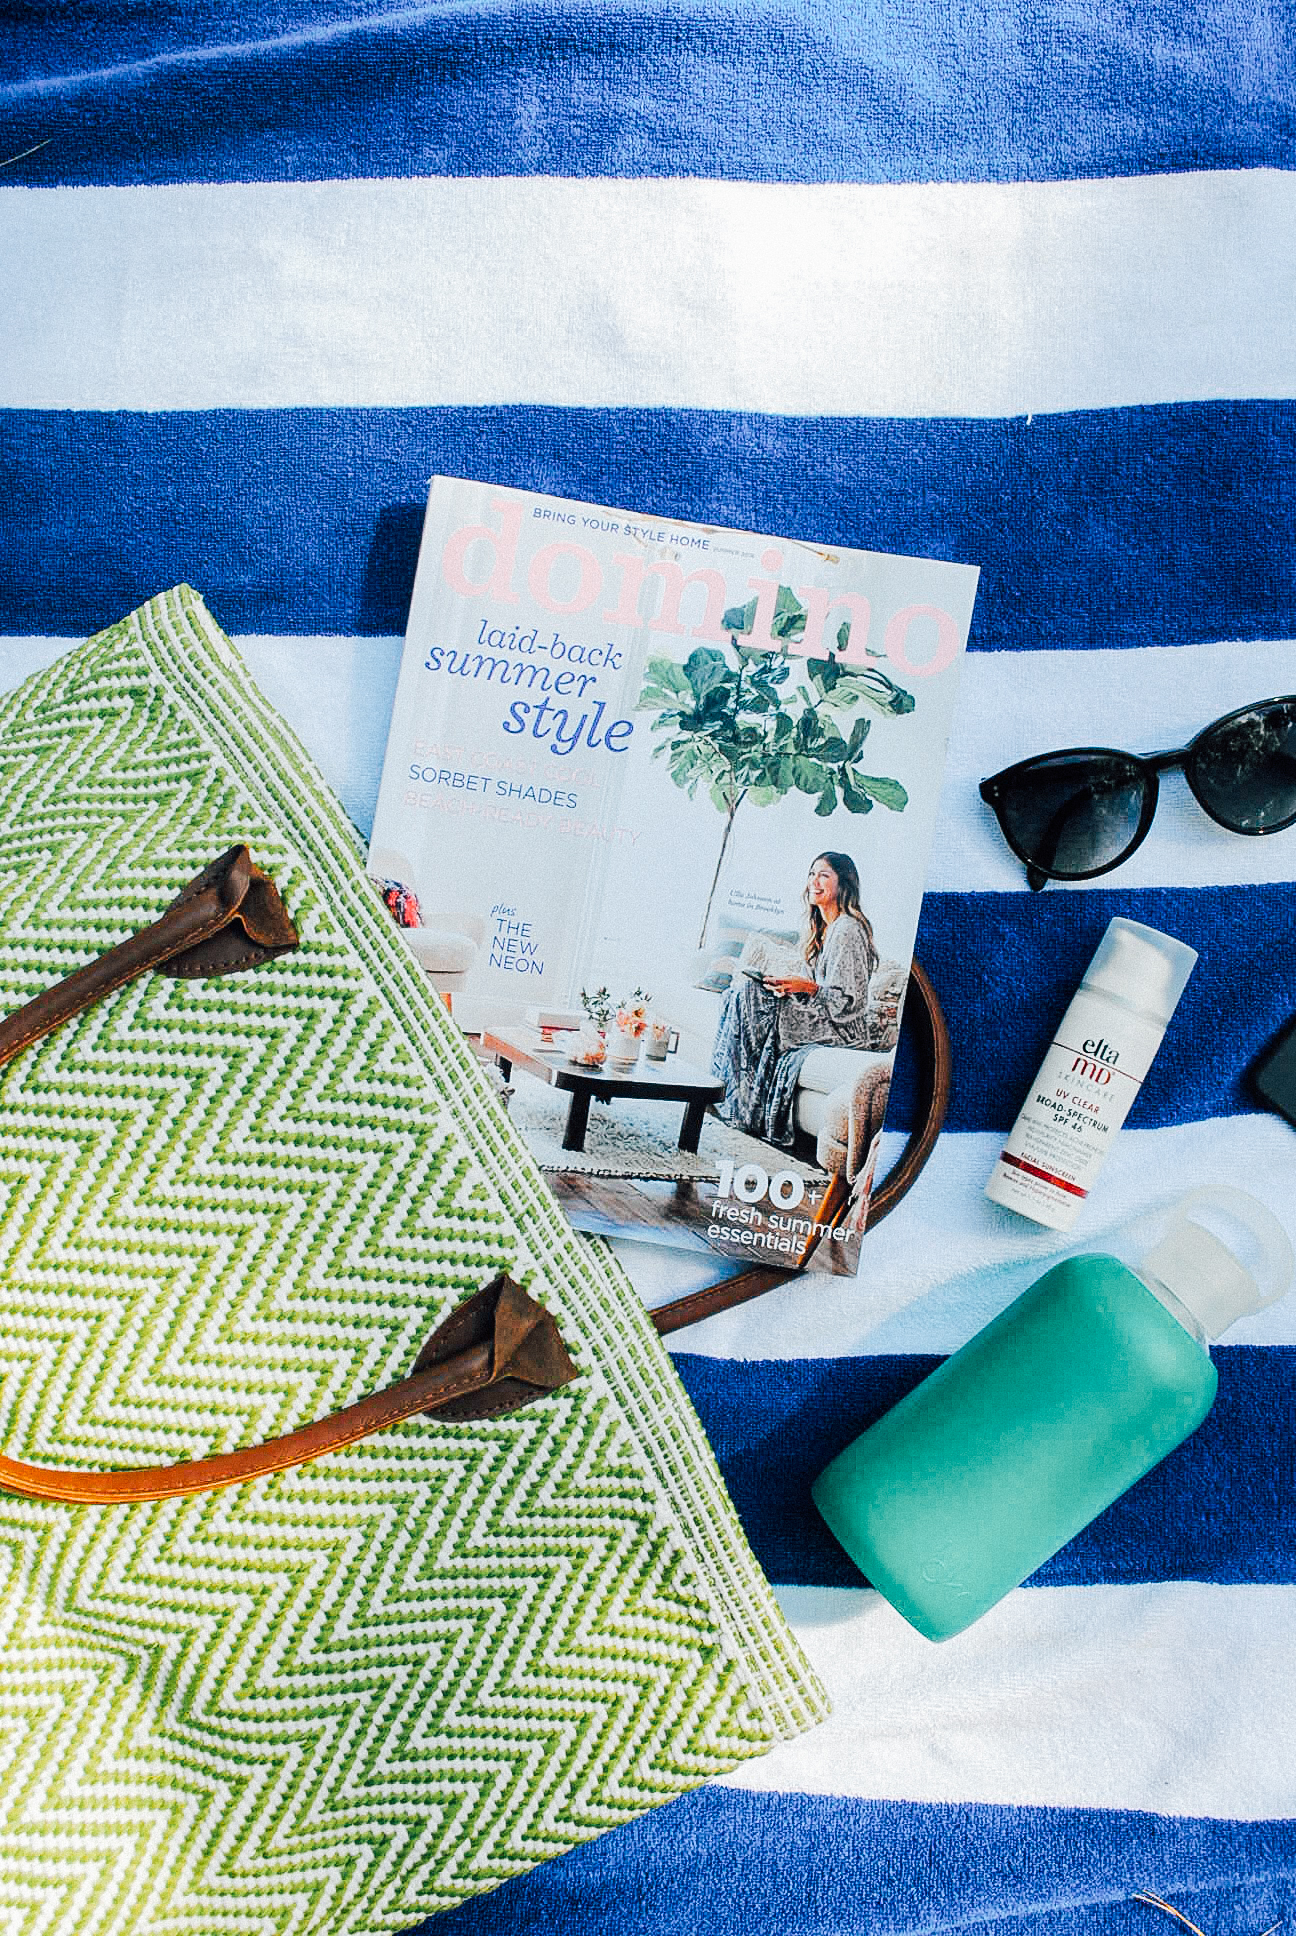 Inside my Beach Bag: Domino Magazine, Elta MD Sunscreen, Oliver Peoples Sunglasses, BKR Water Bottle, Annie Selke Tote.